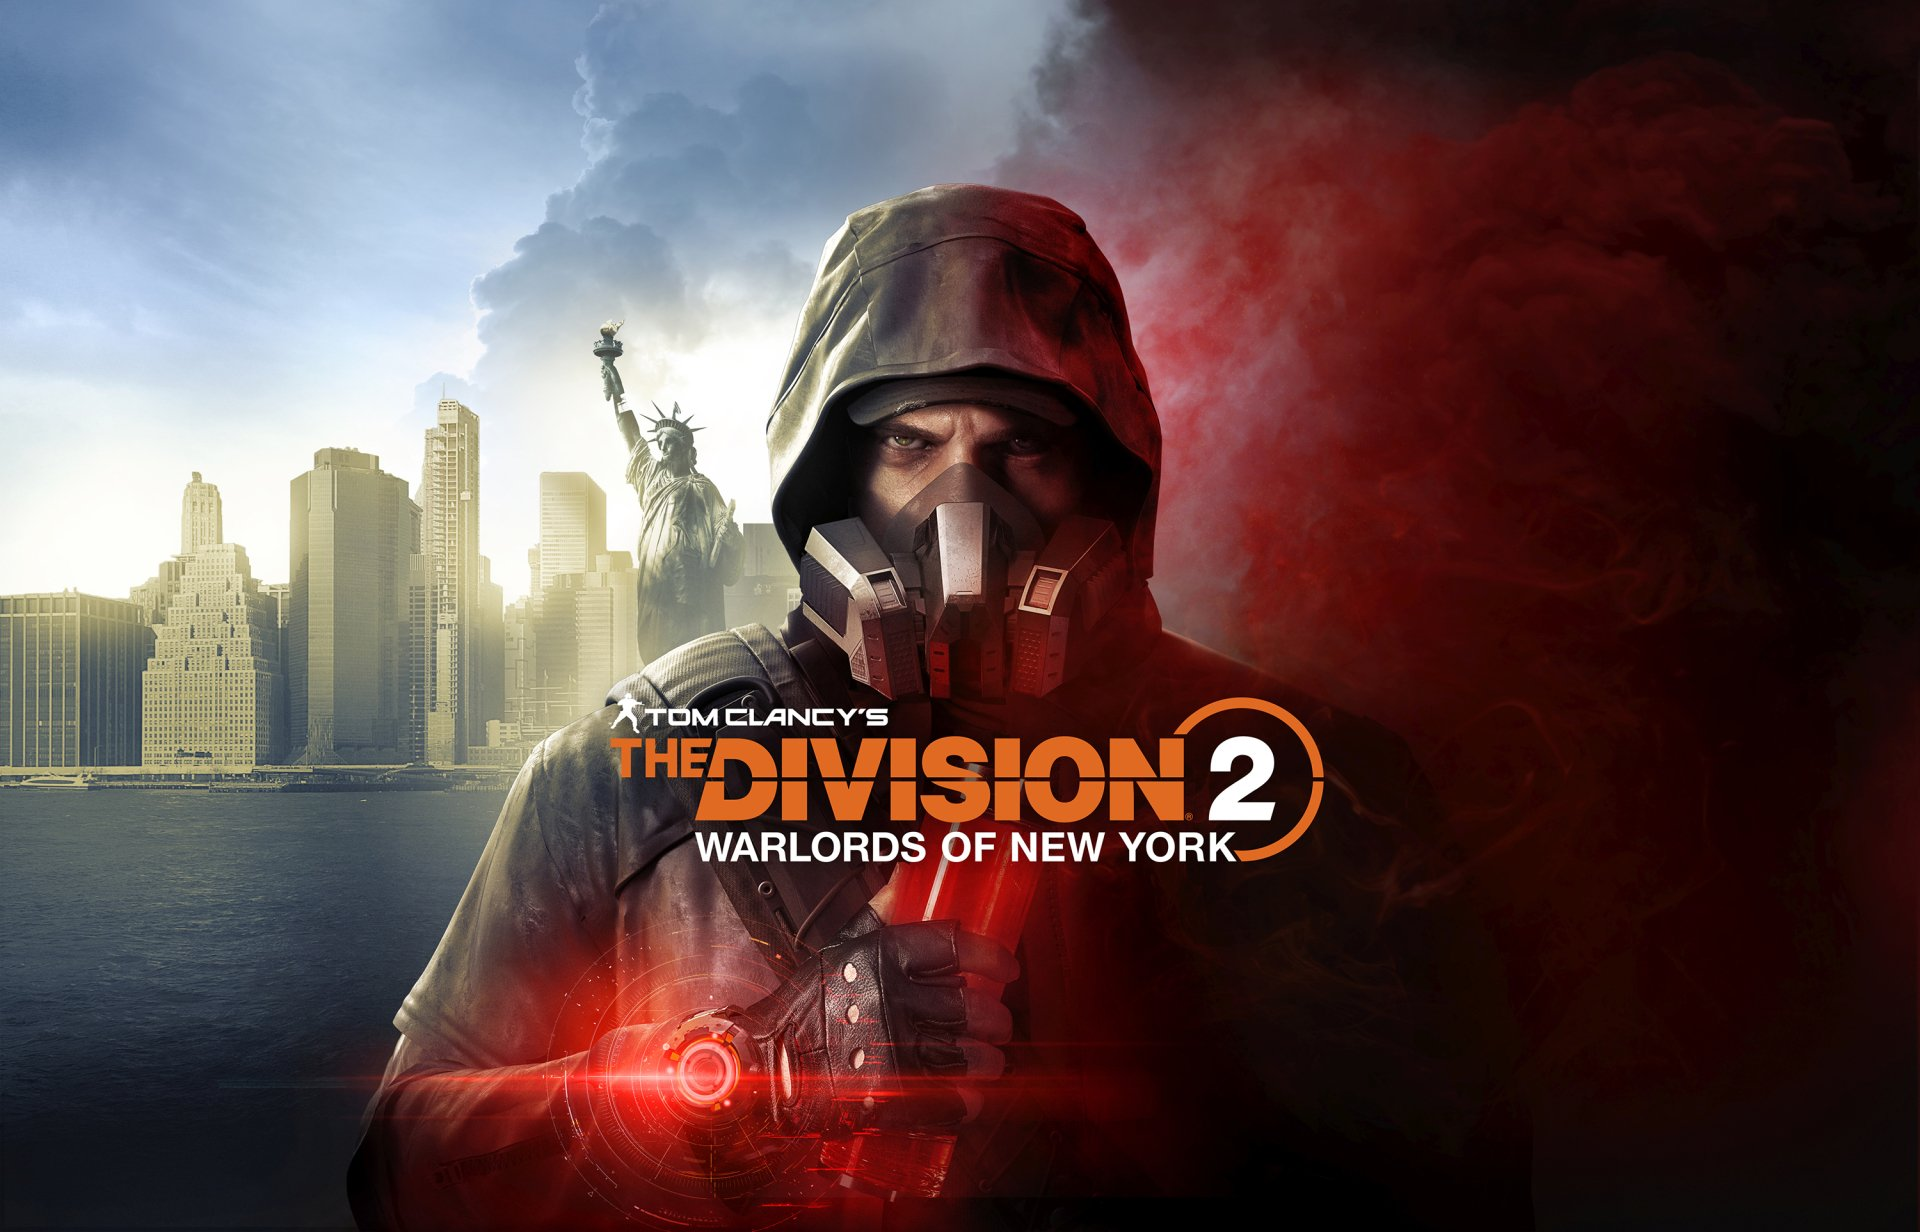 THE DIVISION 2: WARLORDS OF NEW YORK SEZON 2 BAŞLADI!